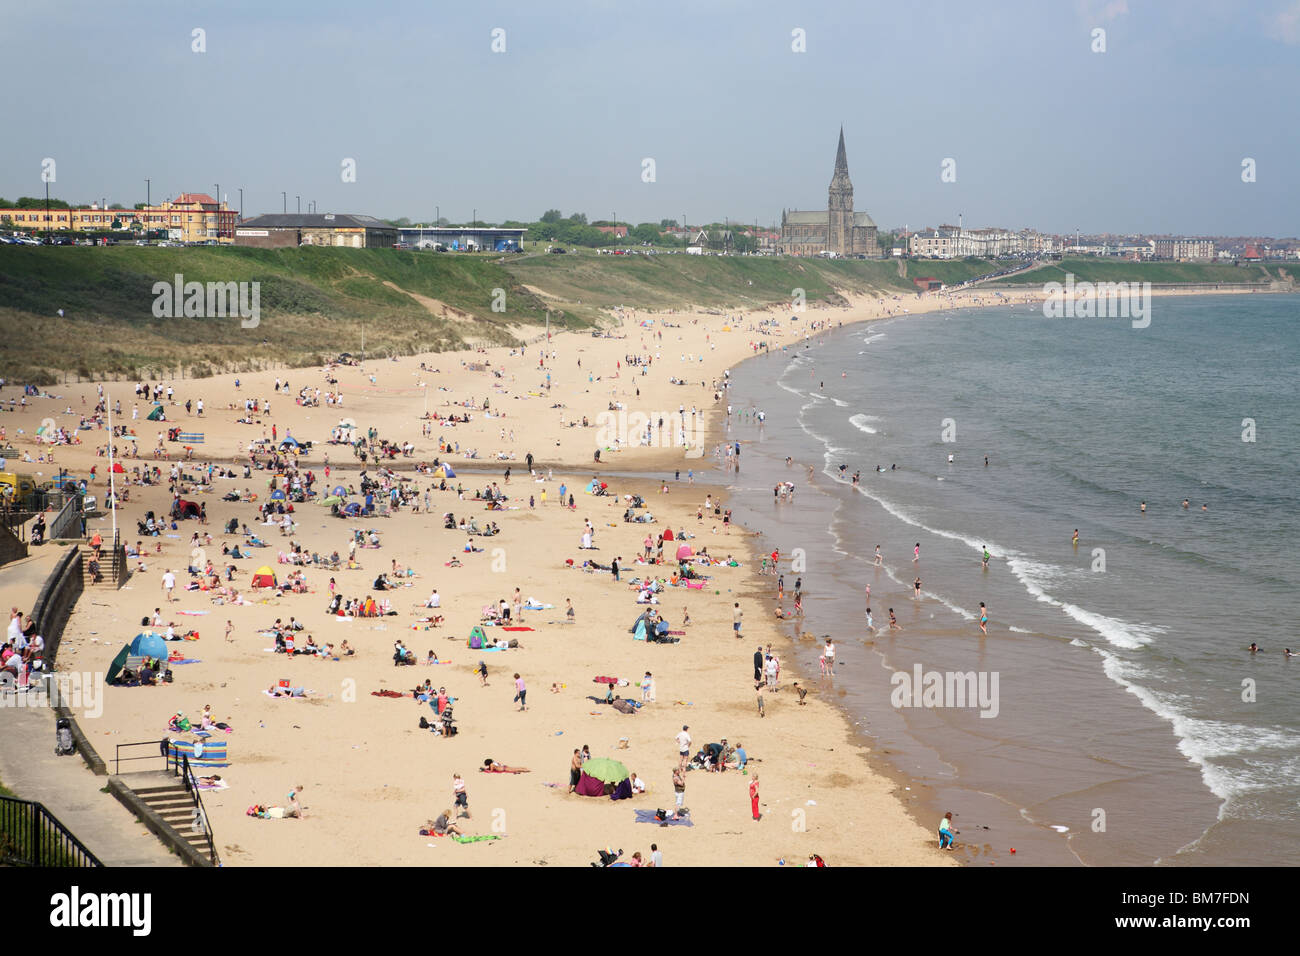 People enjoying a mini heat wave on the 23rd May 2010 on the Longsands beach at Tynemouth, England, UK - Stock Image